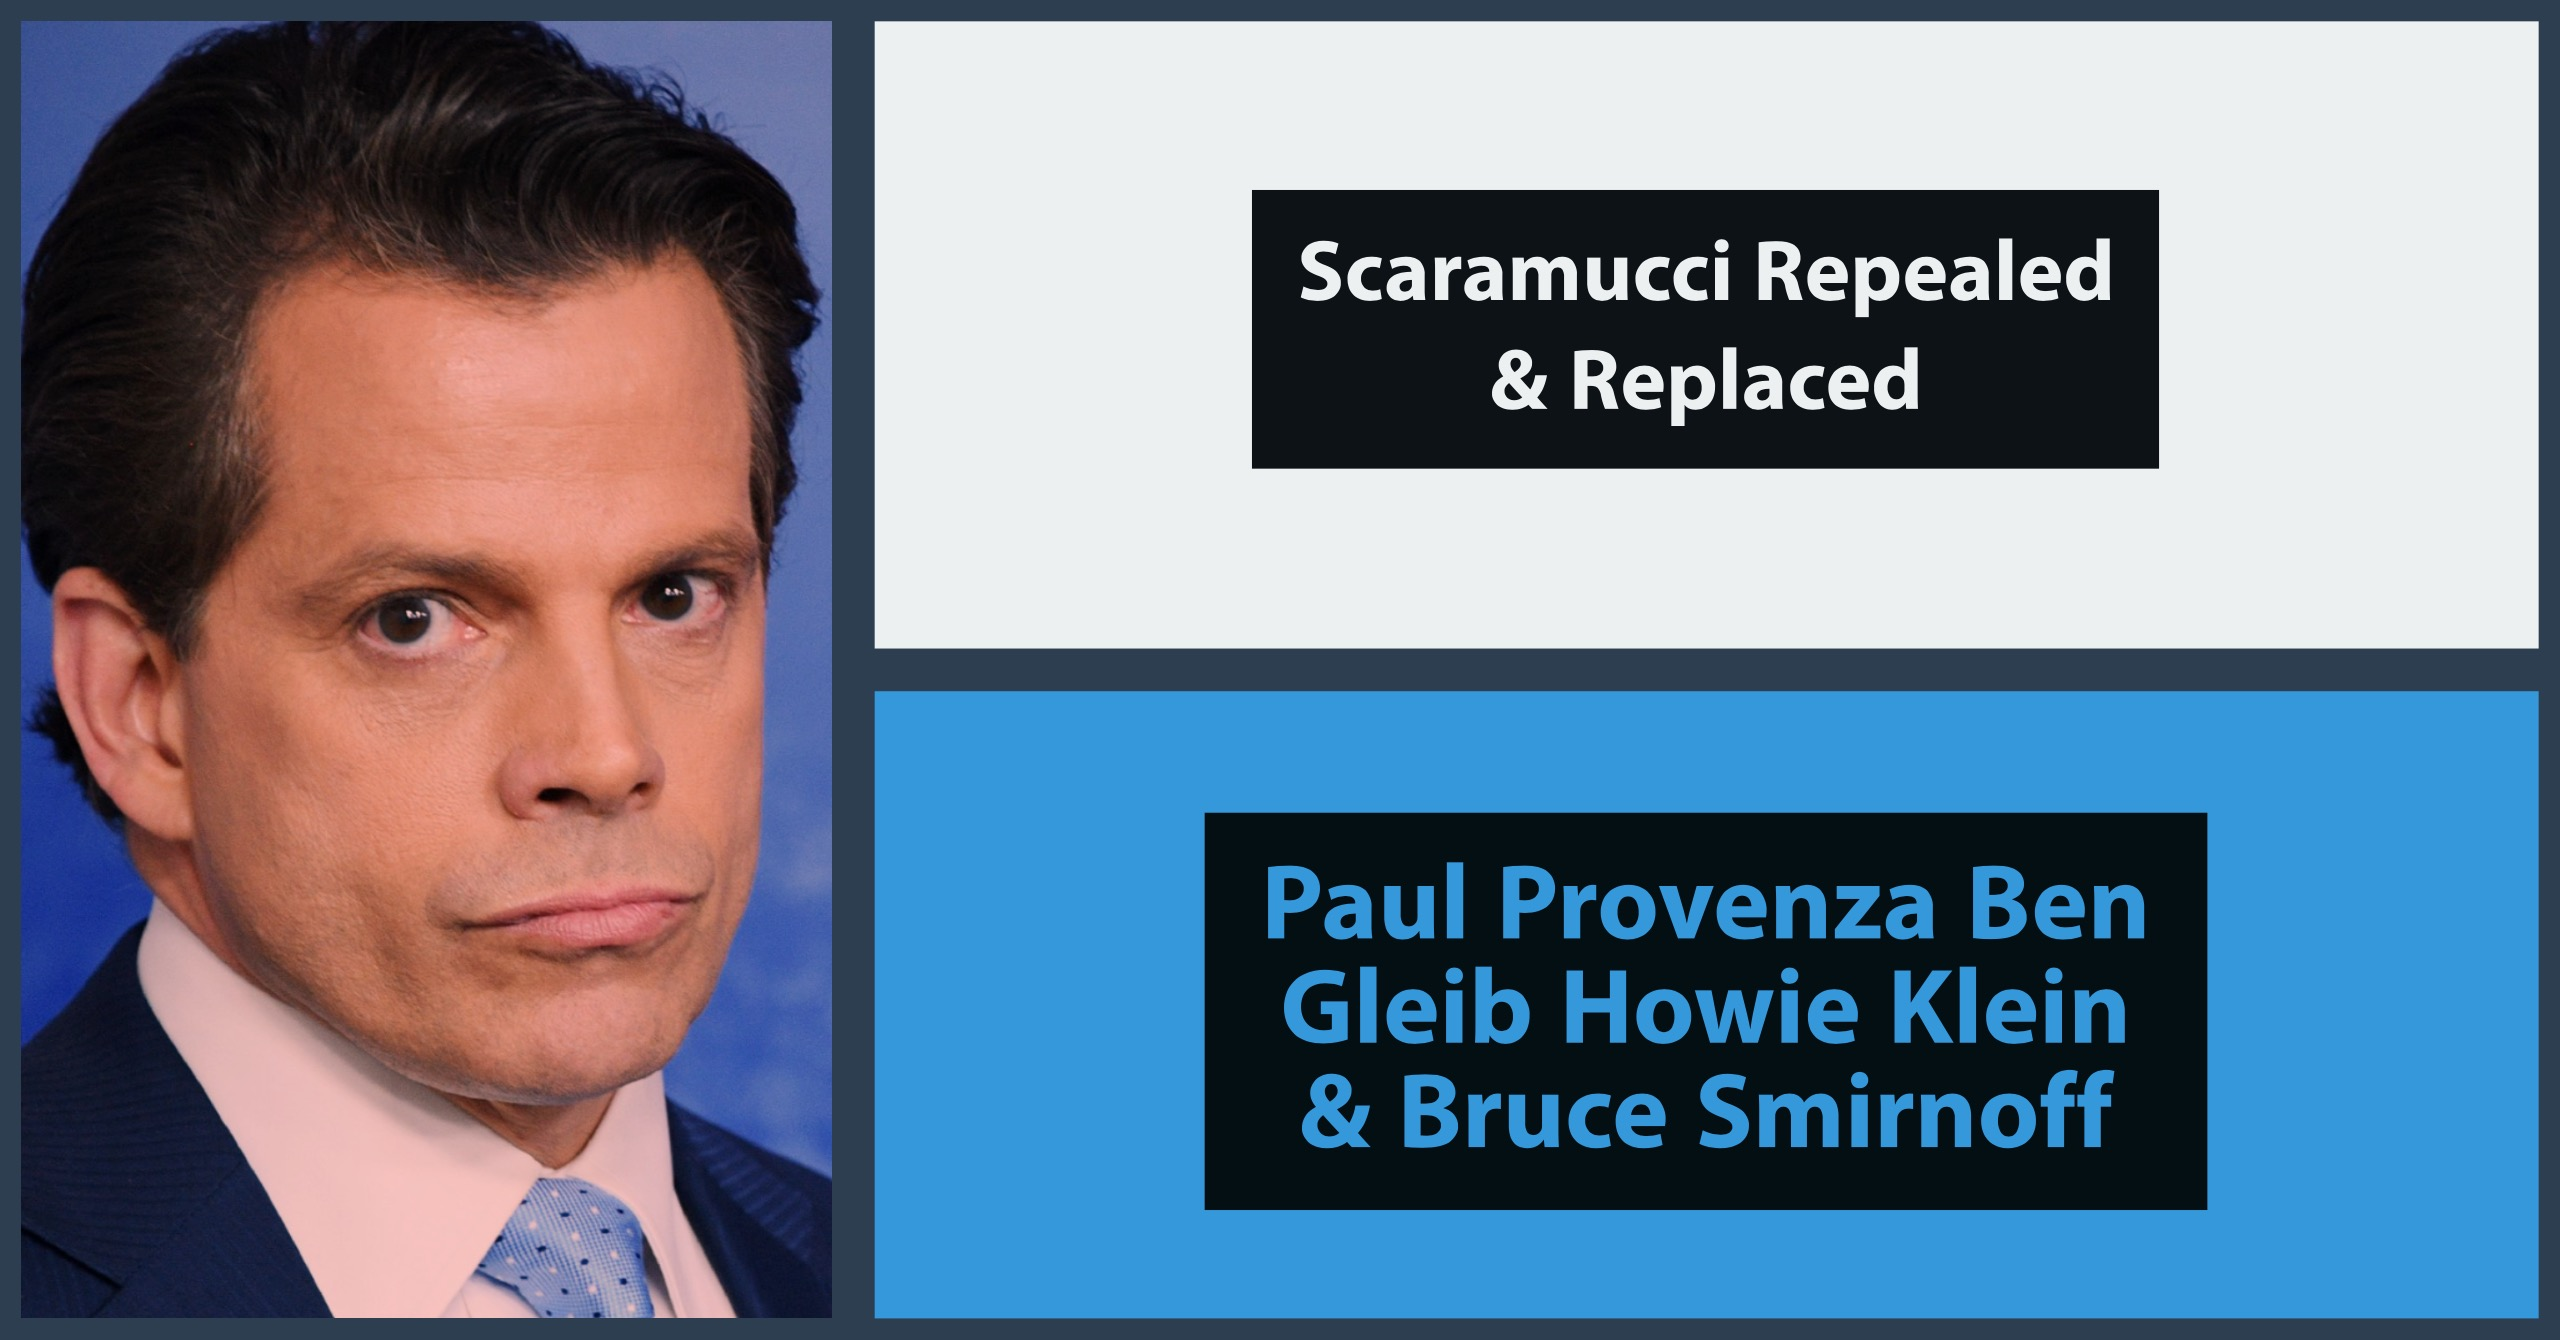 Scaramucci repealed and replaced